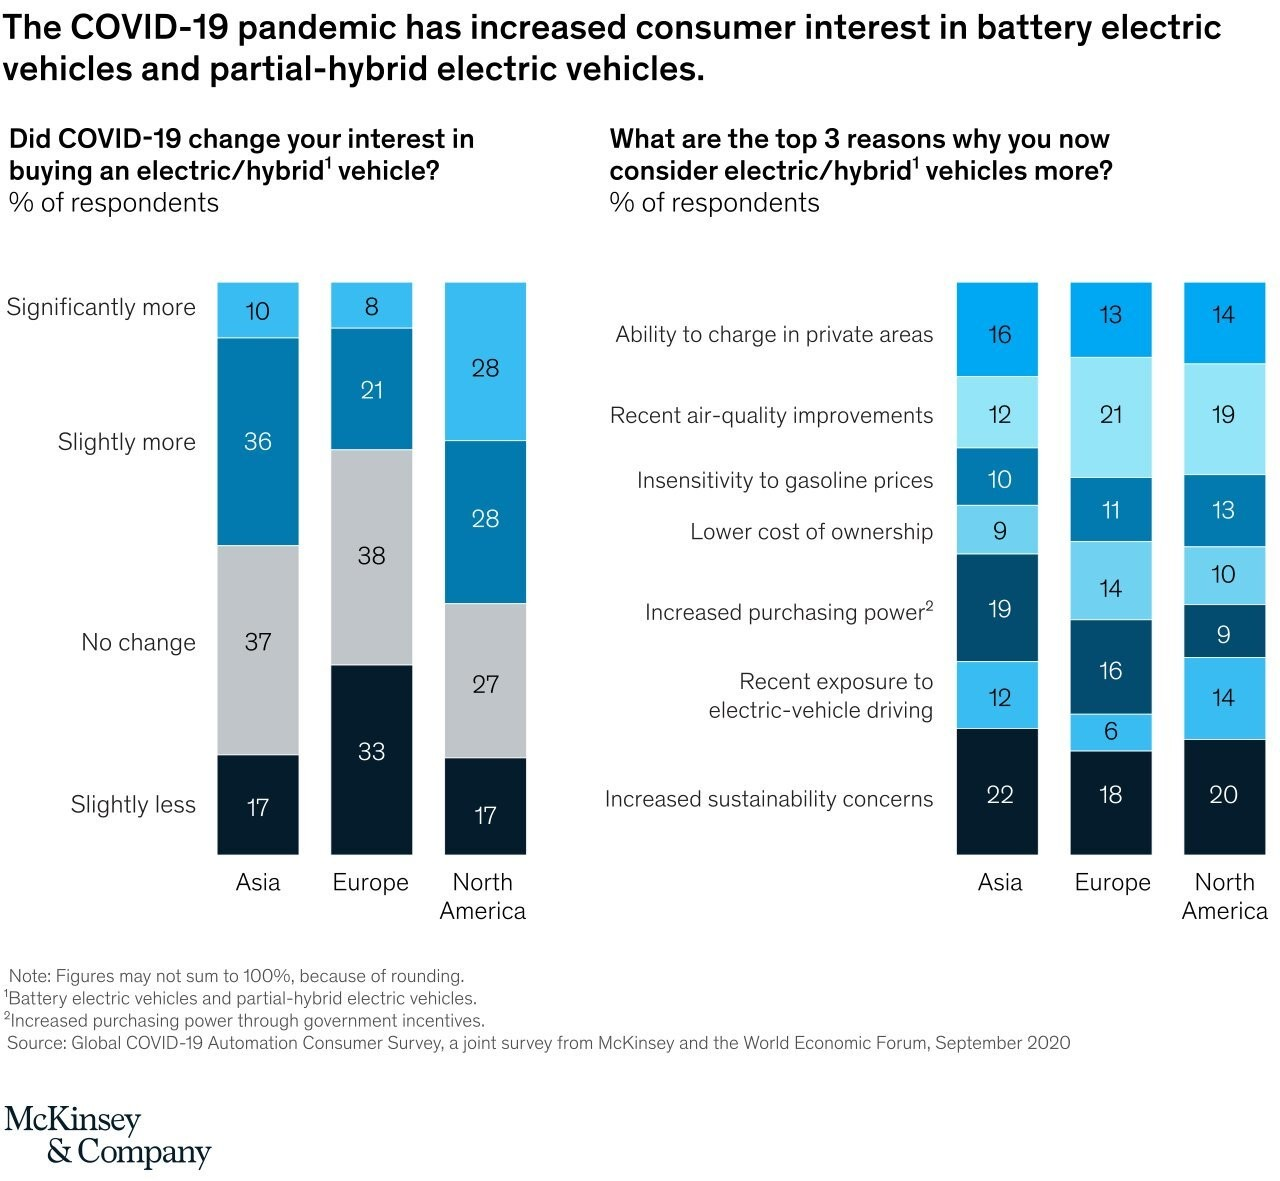 a chart showing that the COVID-19 pandemic has increased interest in buying battery electric vehicles and partial-hybrid electric vehicles